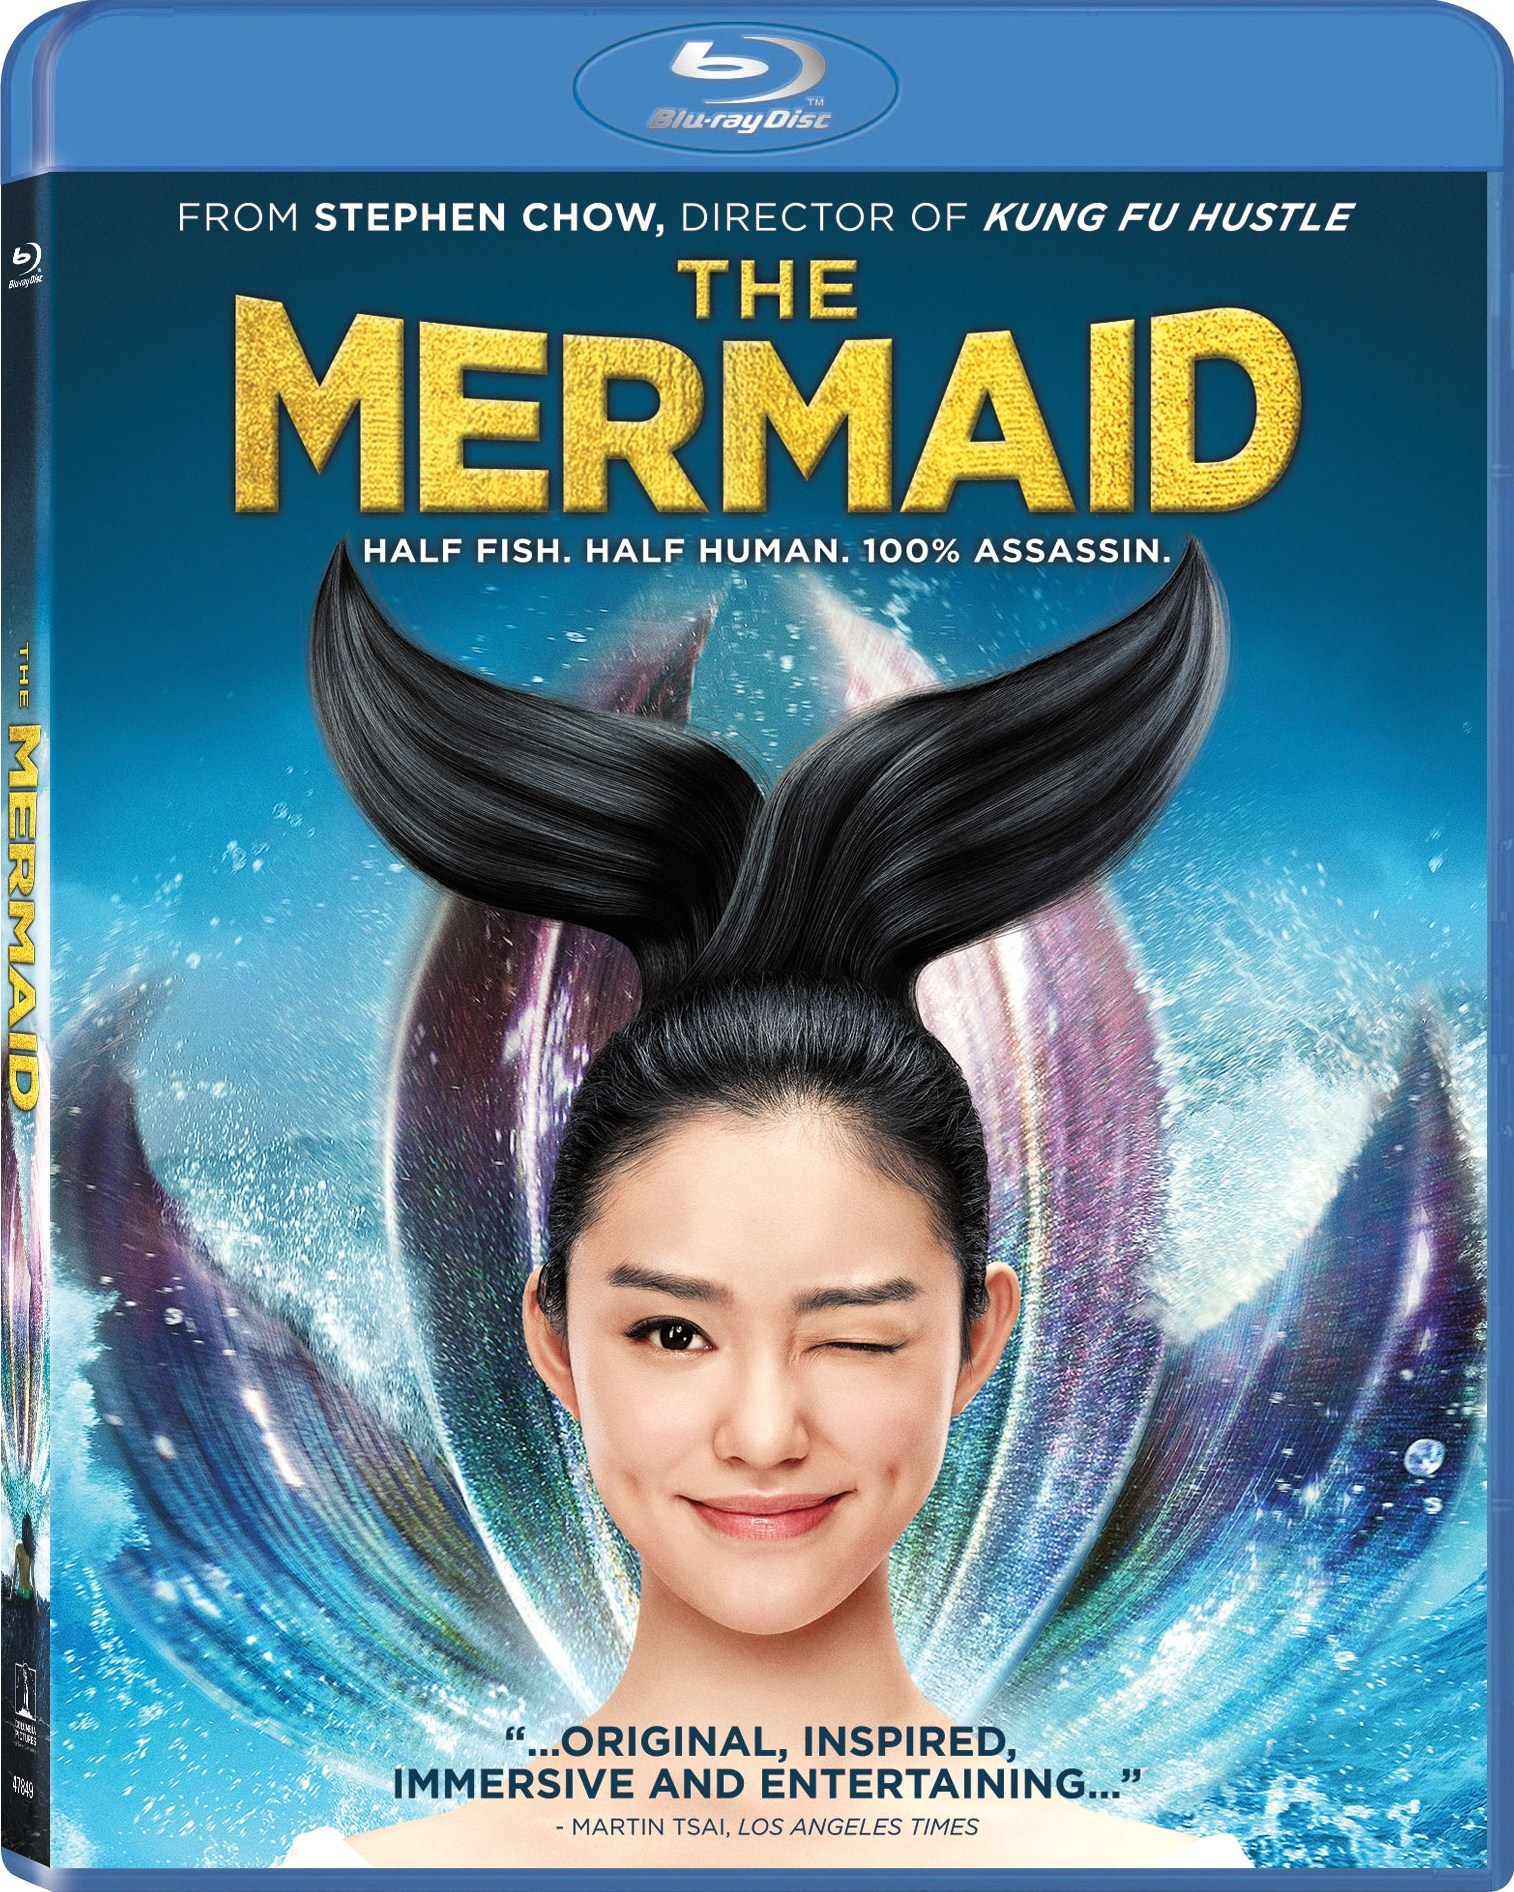 The Mermaid 2016 A Mermaid Assassin S Bonkerstastic Chinese Action Fantasy Love Story Movies Films Flix